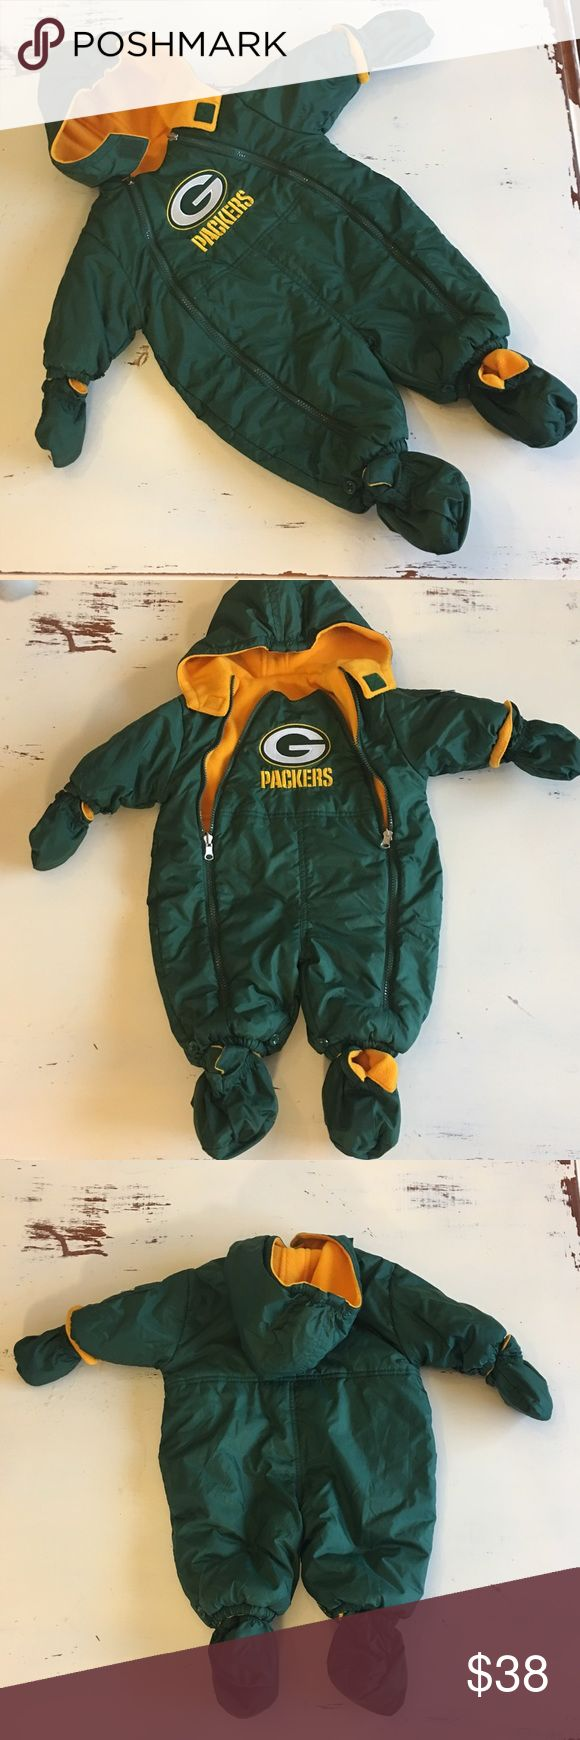 Green Bay Packers reversible fleece snowsuit NFL reversible  cozy fleece  snowsuit sporting the Green Bay Packers logo and green and gold reversible booties and mittens that can be detached. Like new great condition. nfl Jackets & Coats Puffers